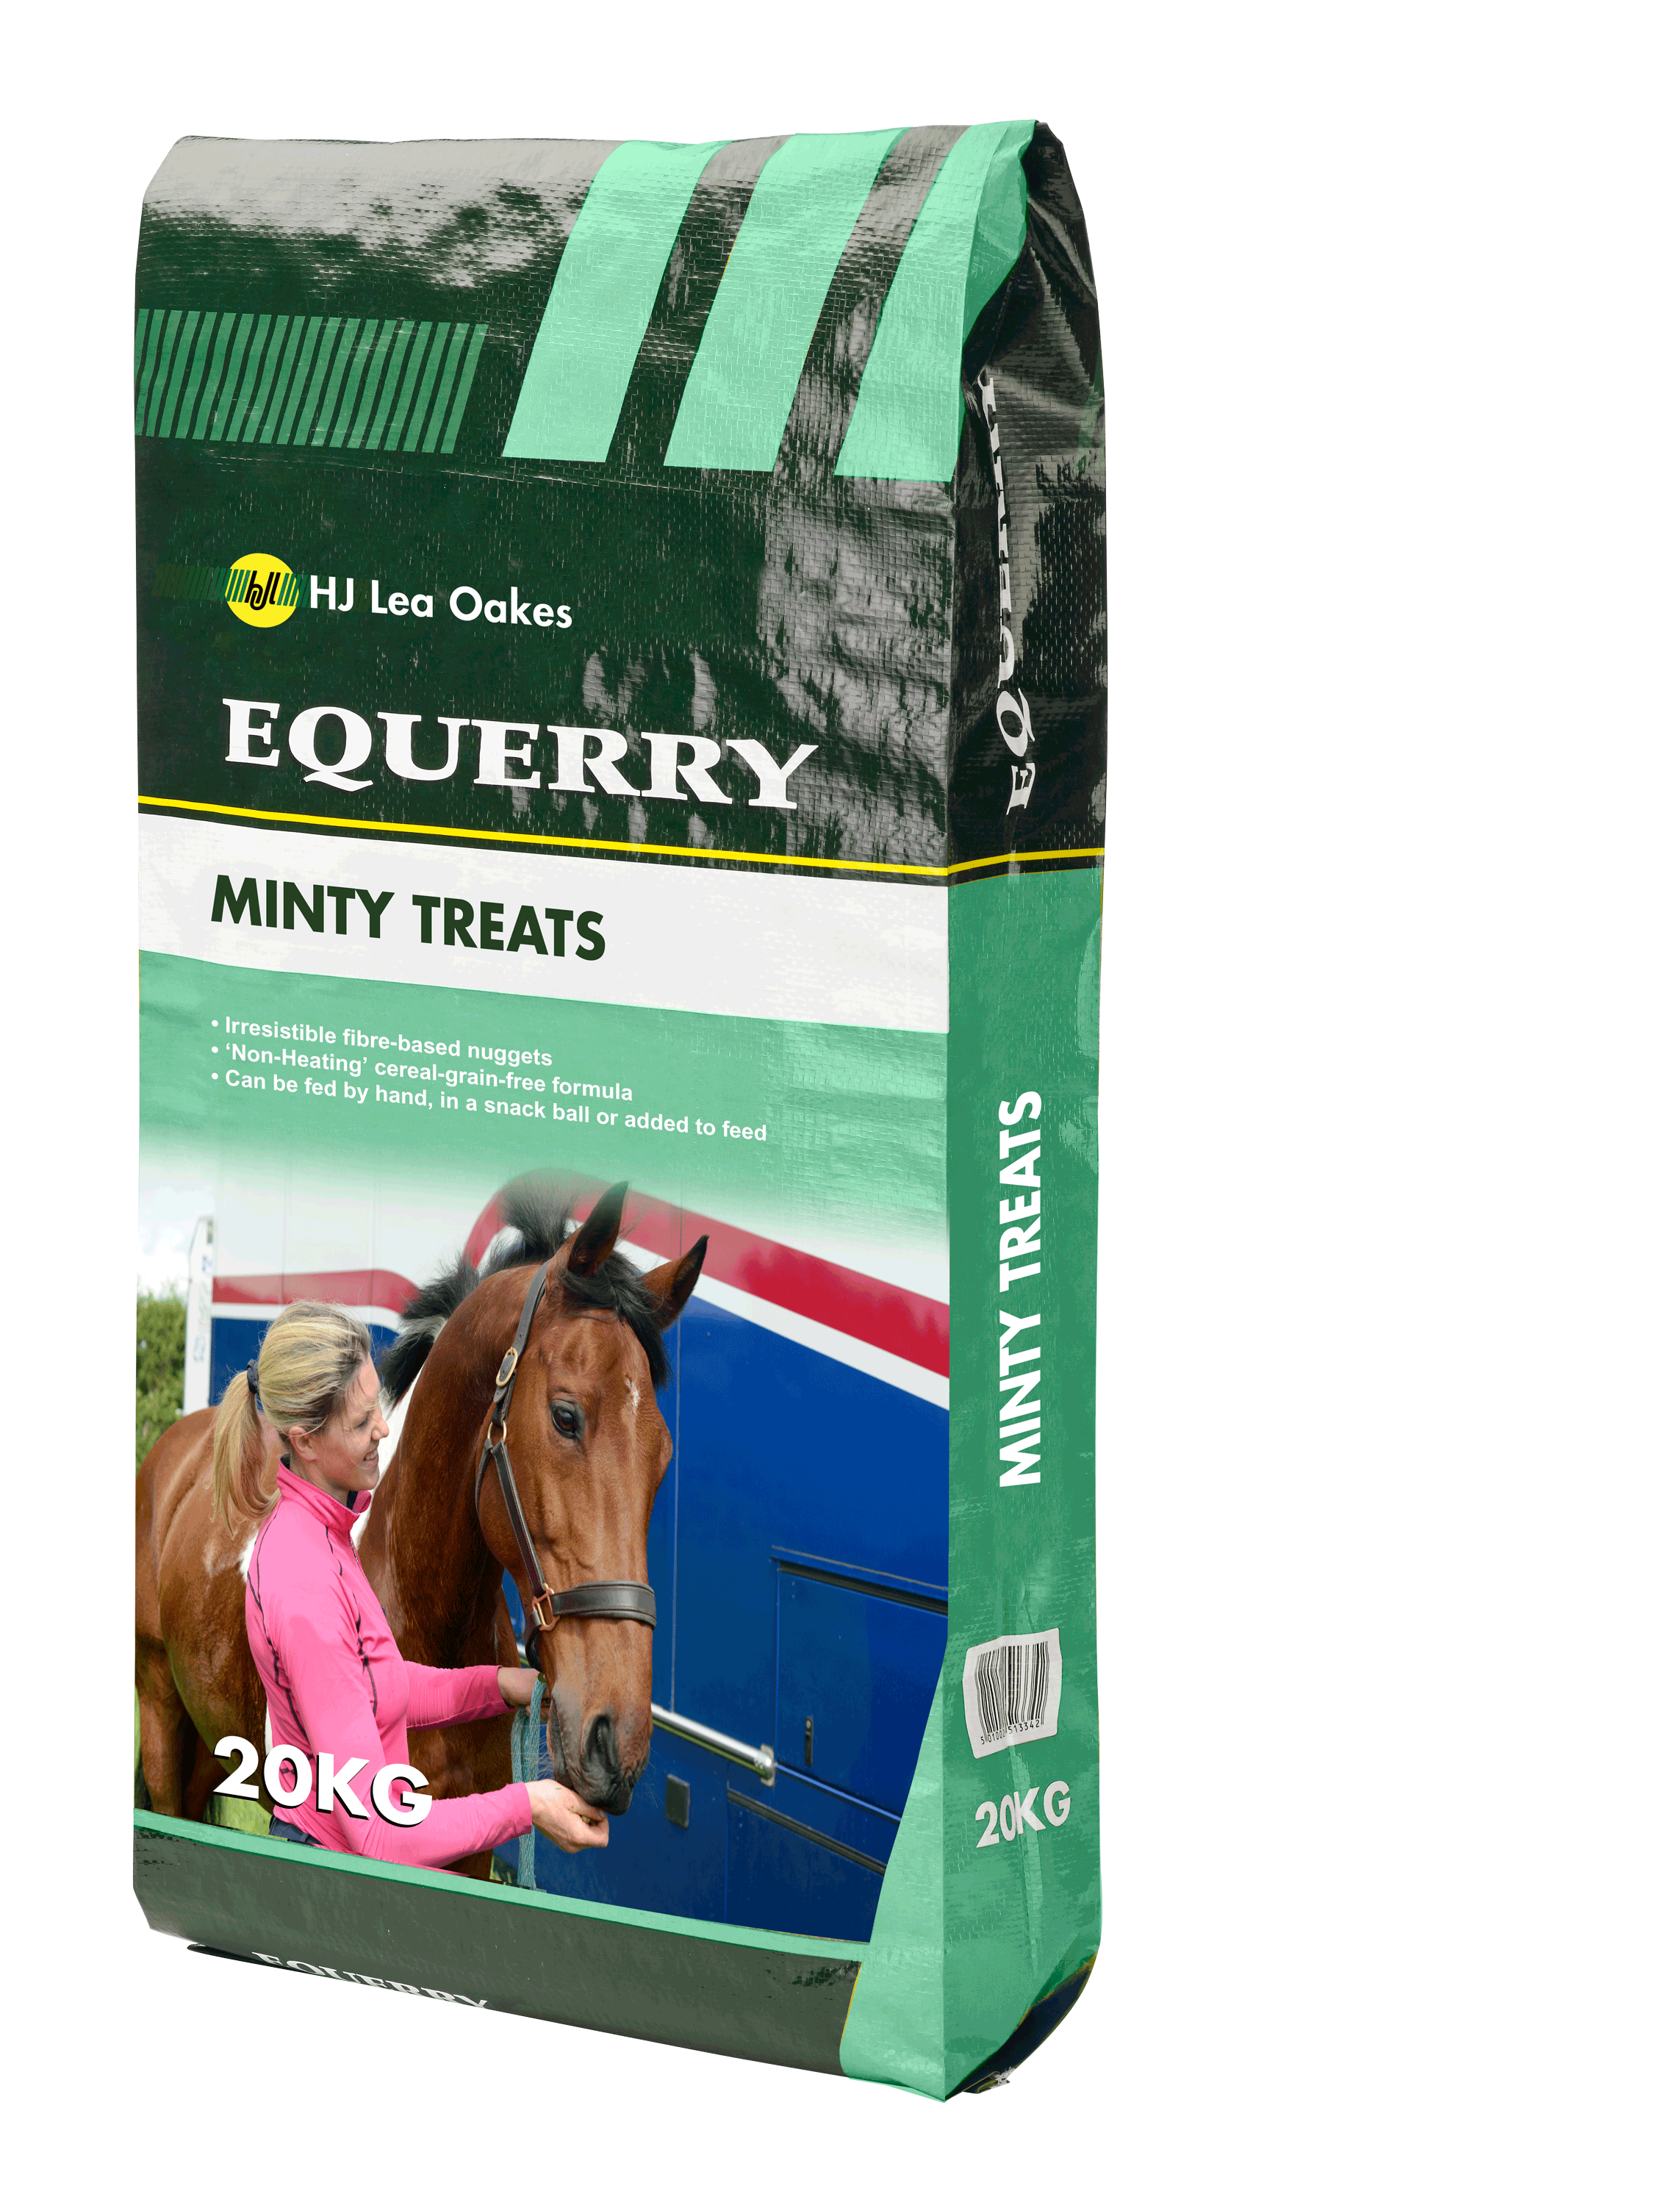 Equerry Minty Treats sweepstakes